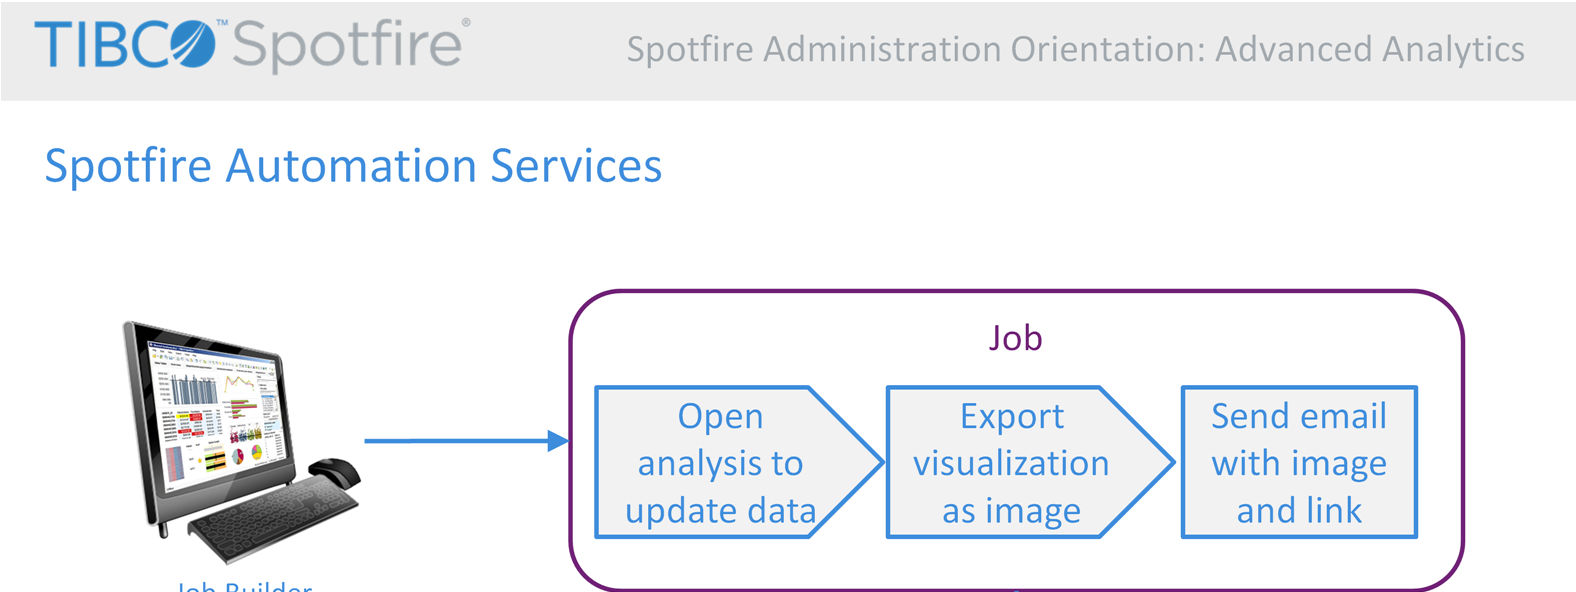 Spotfire Automation Services is used to execute automated processes on the Spotfire Server.